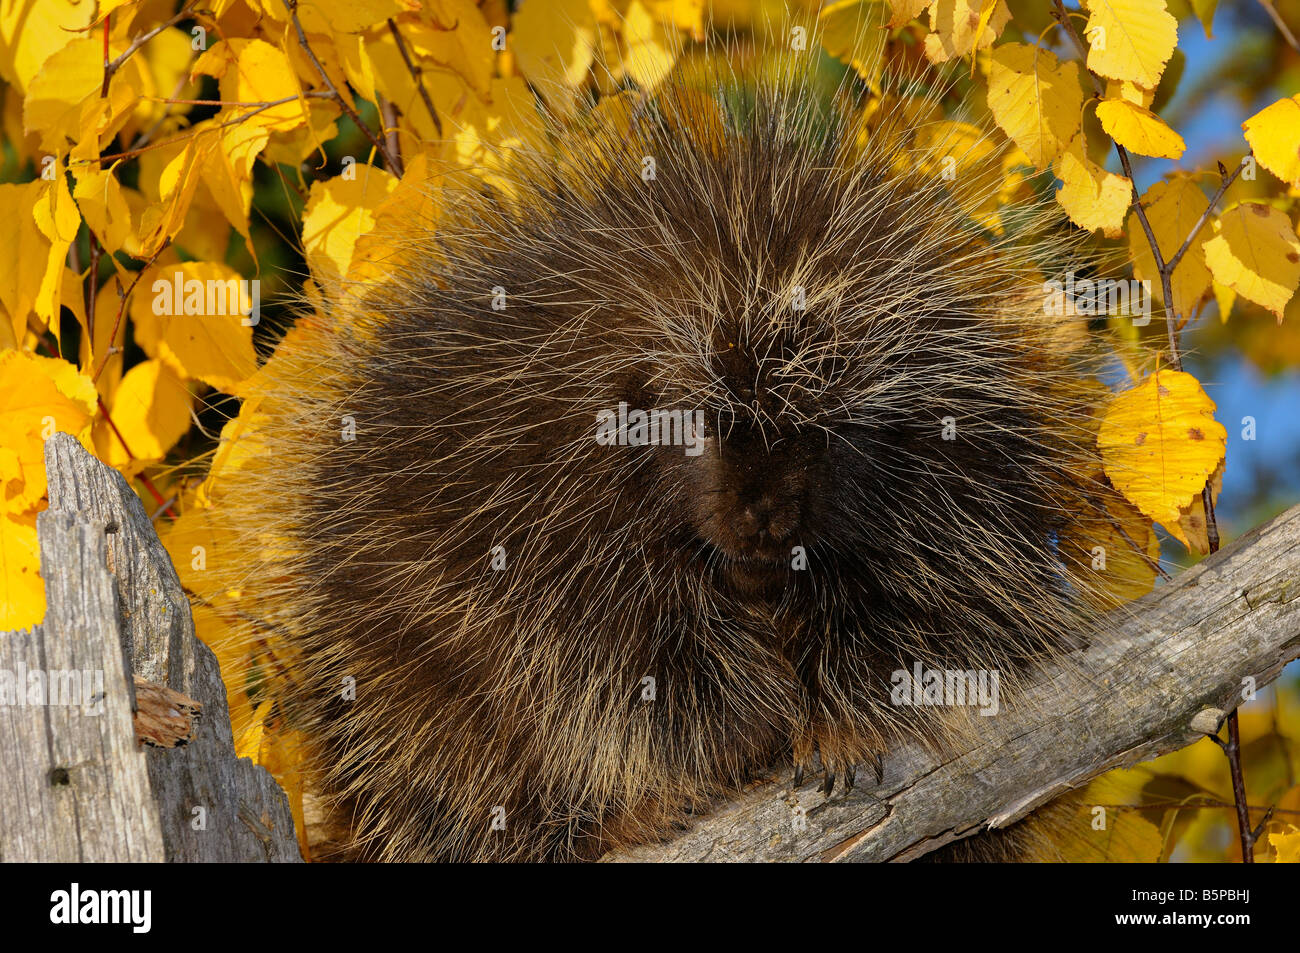 North American Porcupine on a dead tree stump with yellow birch leaves in the Fall - Stock Image